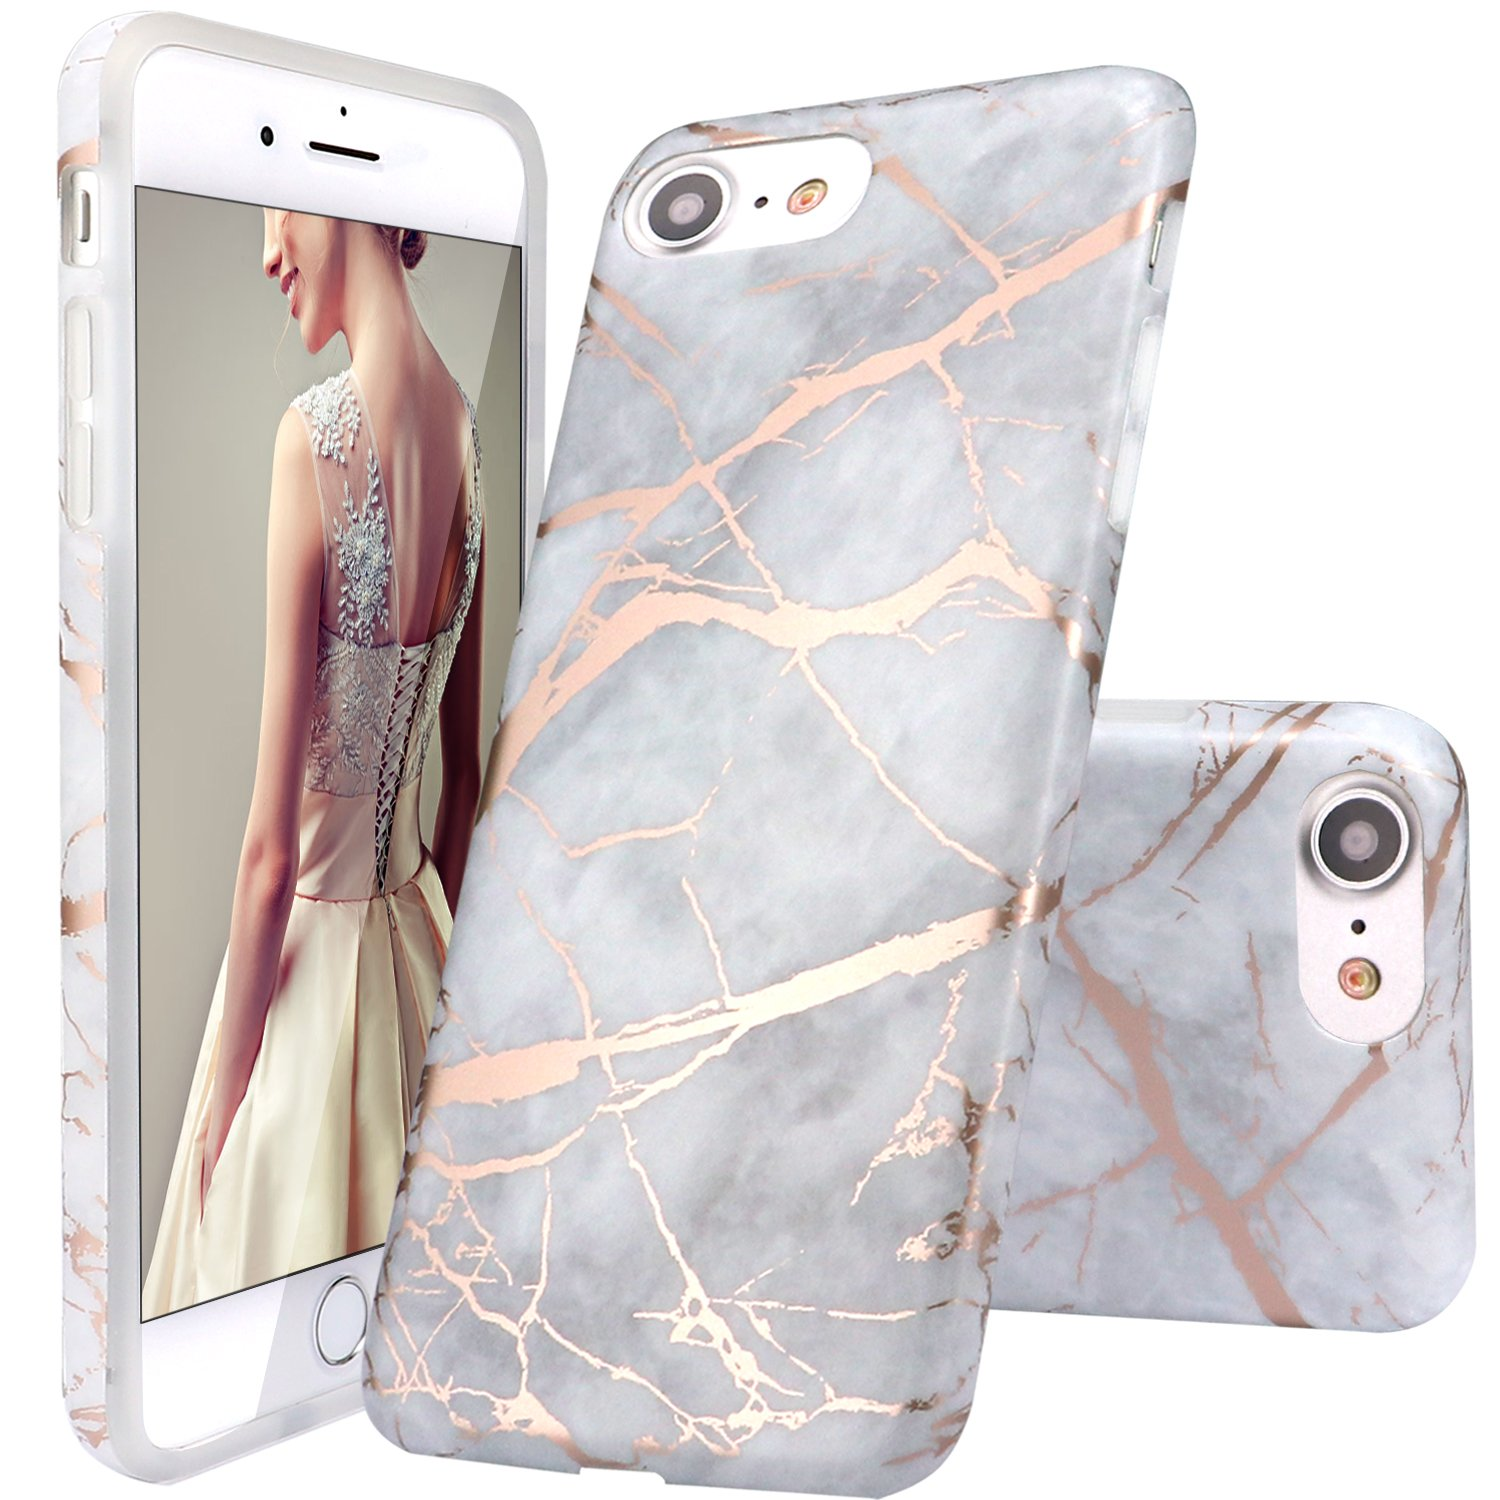 iphone 8 phone cases amazon co ukdoujiaz compatible with iphone 7 case,iphone 8 case,gray shiny rose gold marble